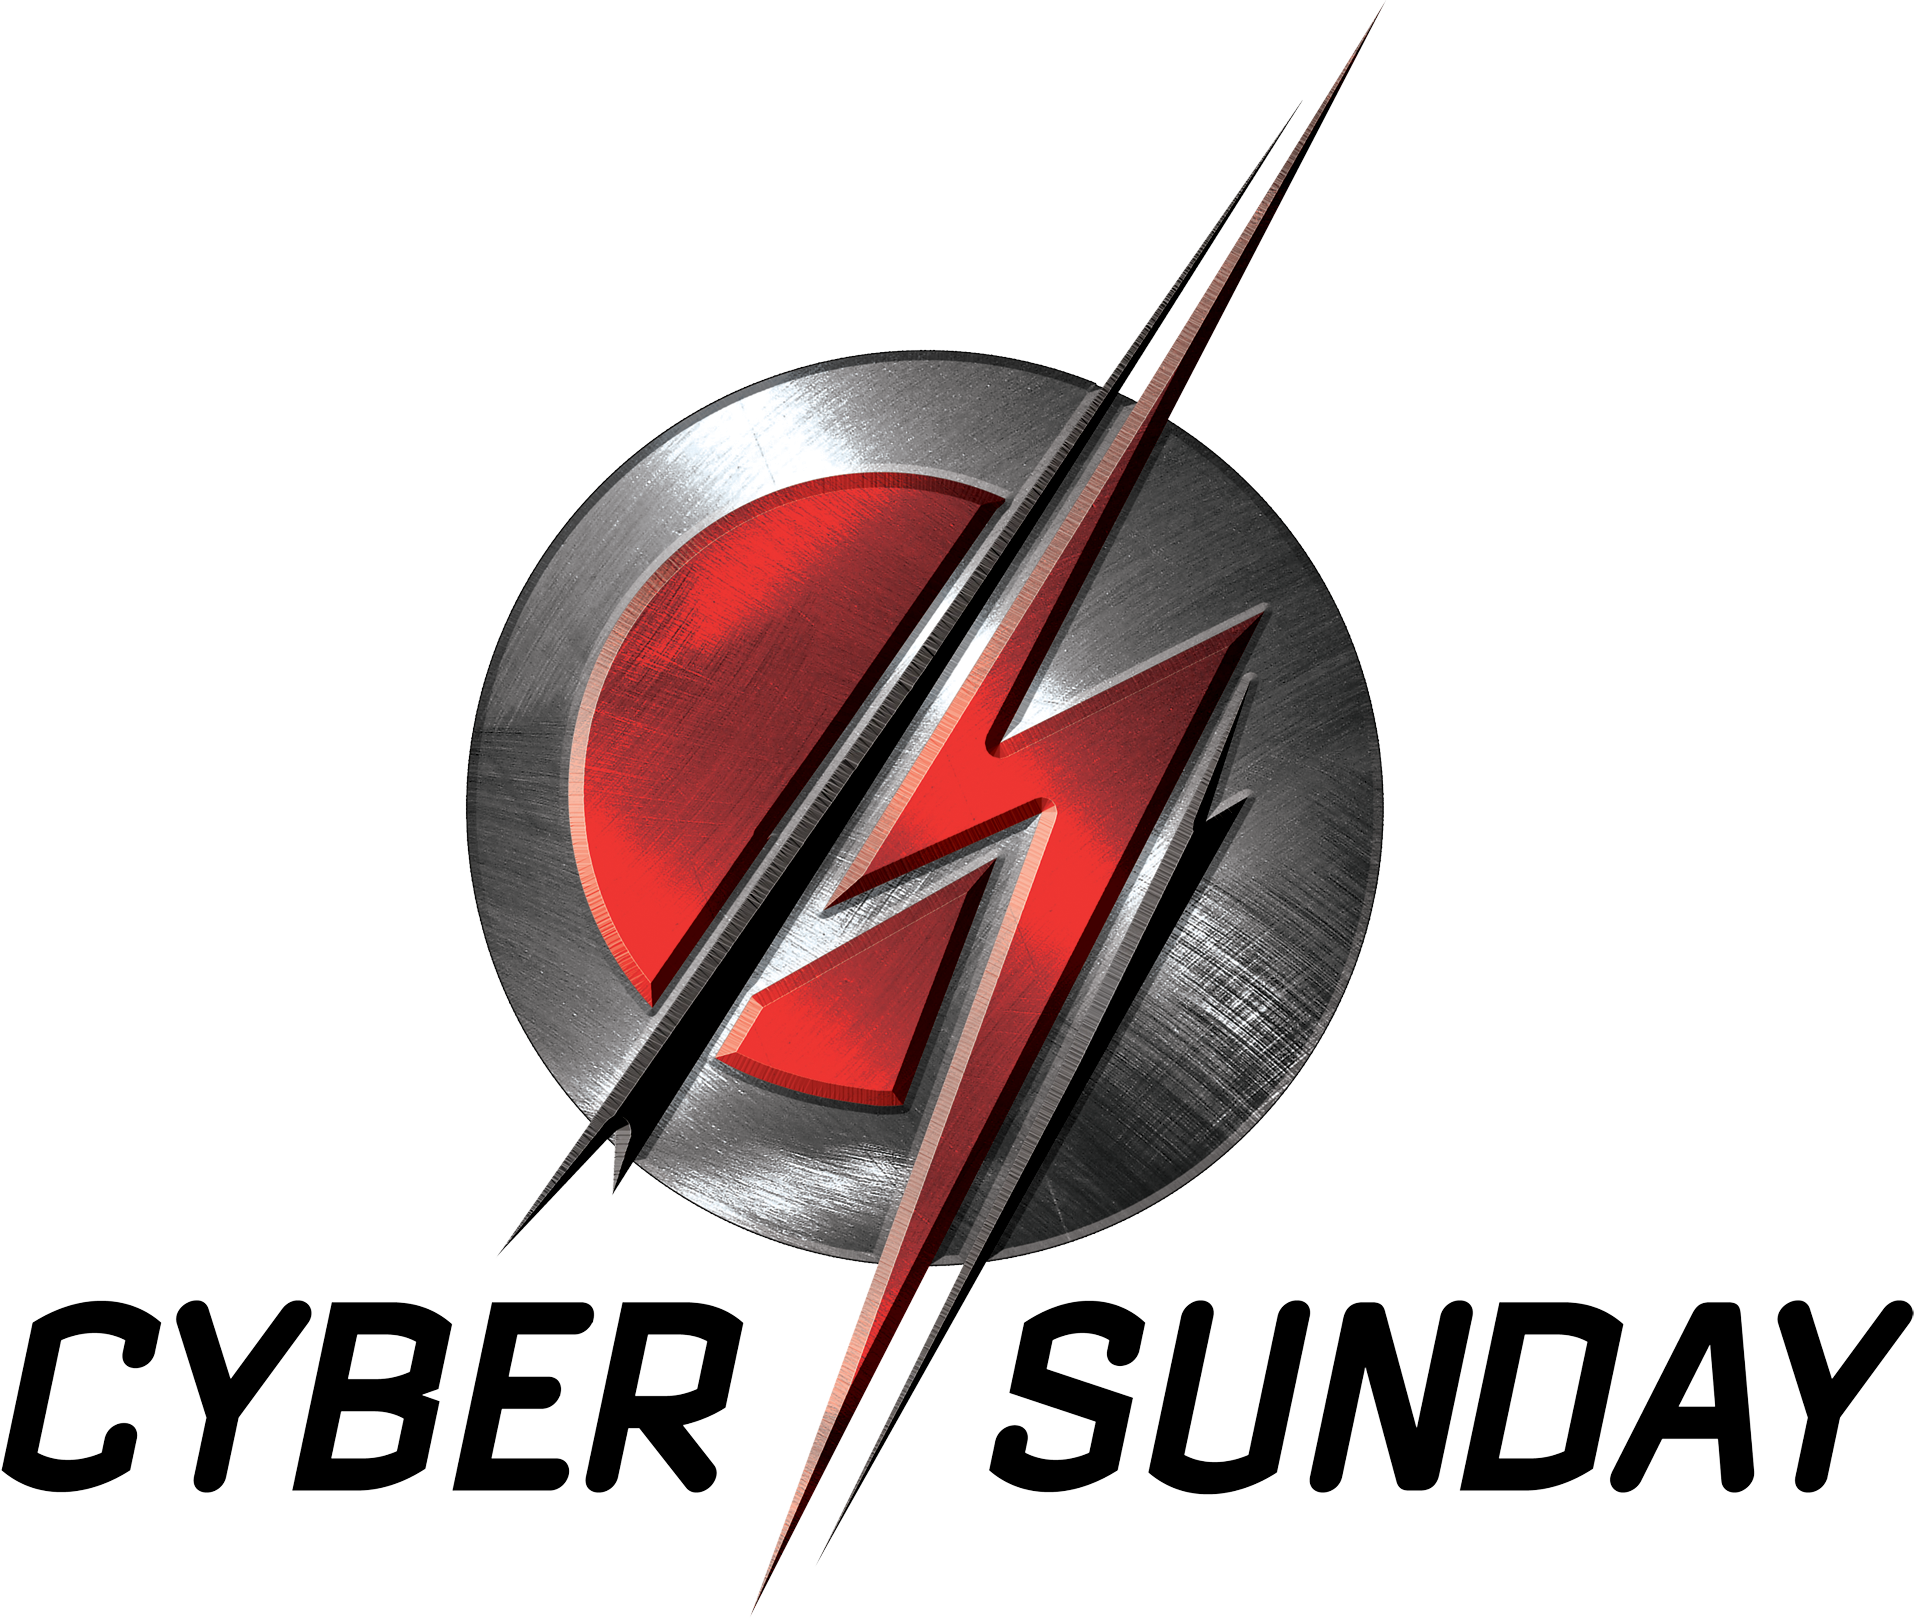 Wwe Cyber Sunday Officialwwe Wiki Fandom Powered By Wikia